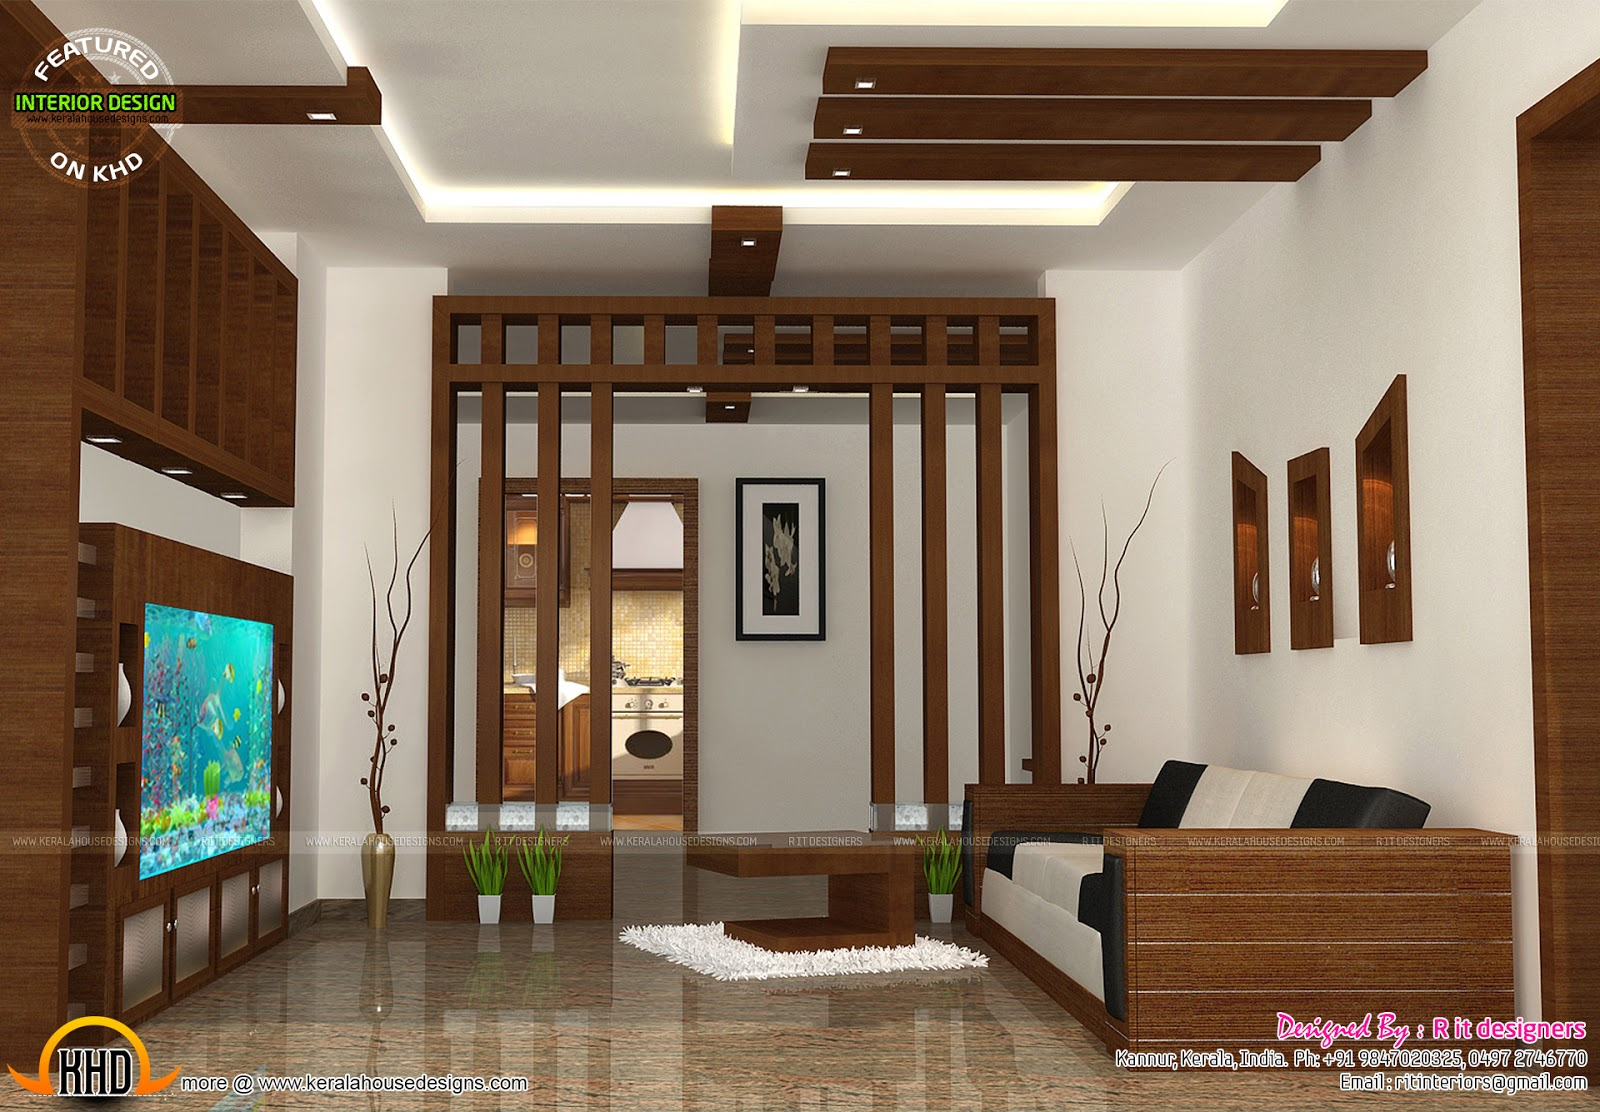 Wooden finish interiors kerala home design and floor plans for Interior wallpaper designs india